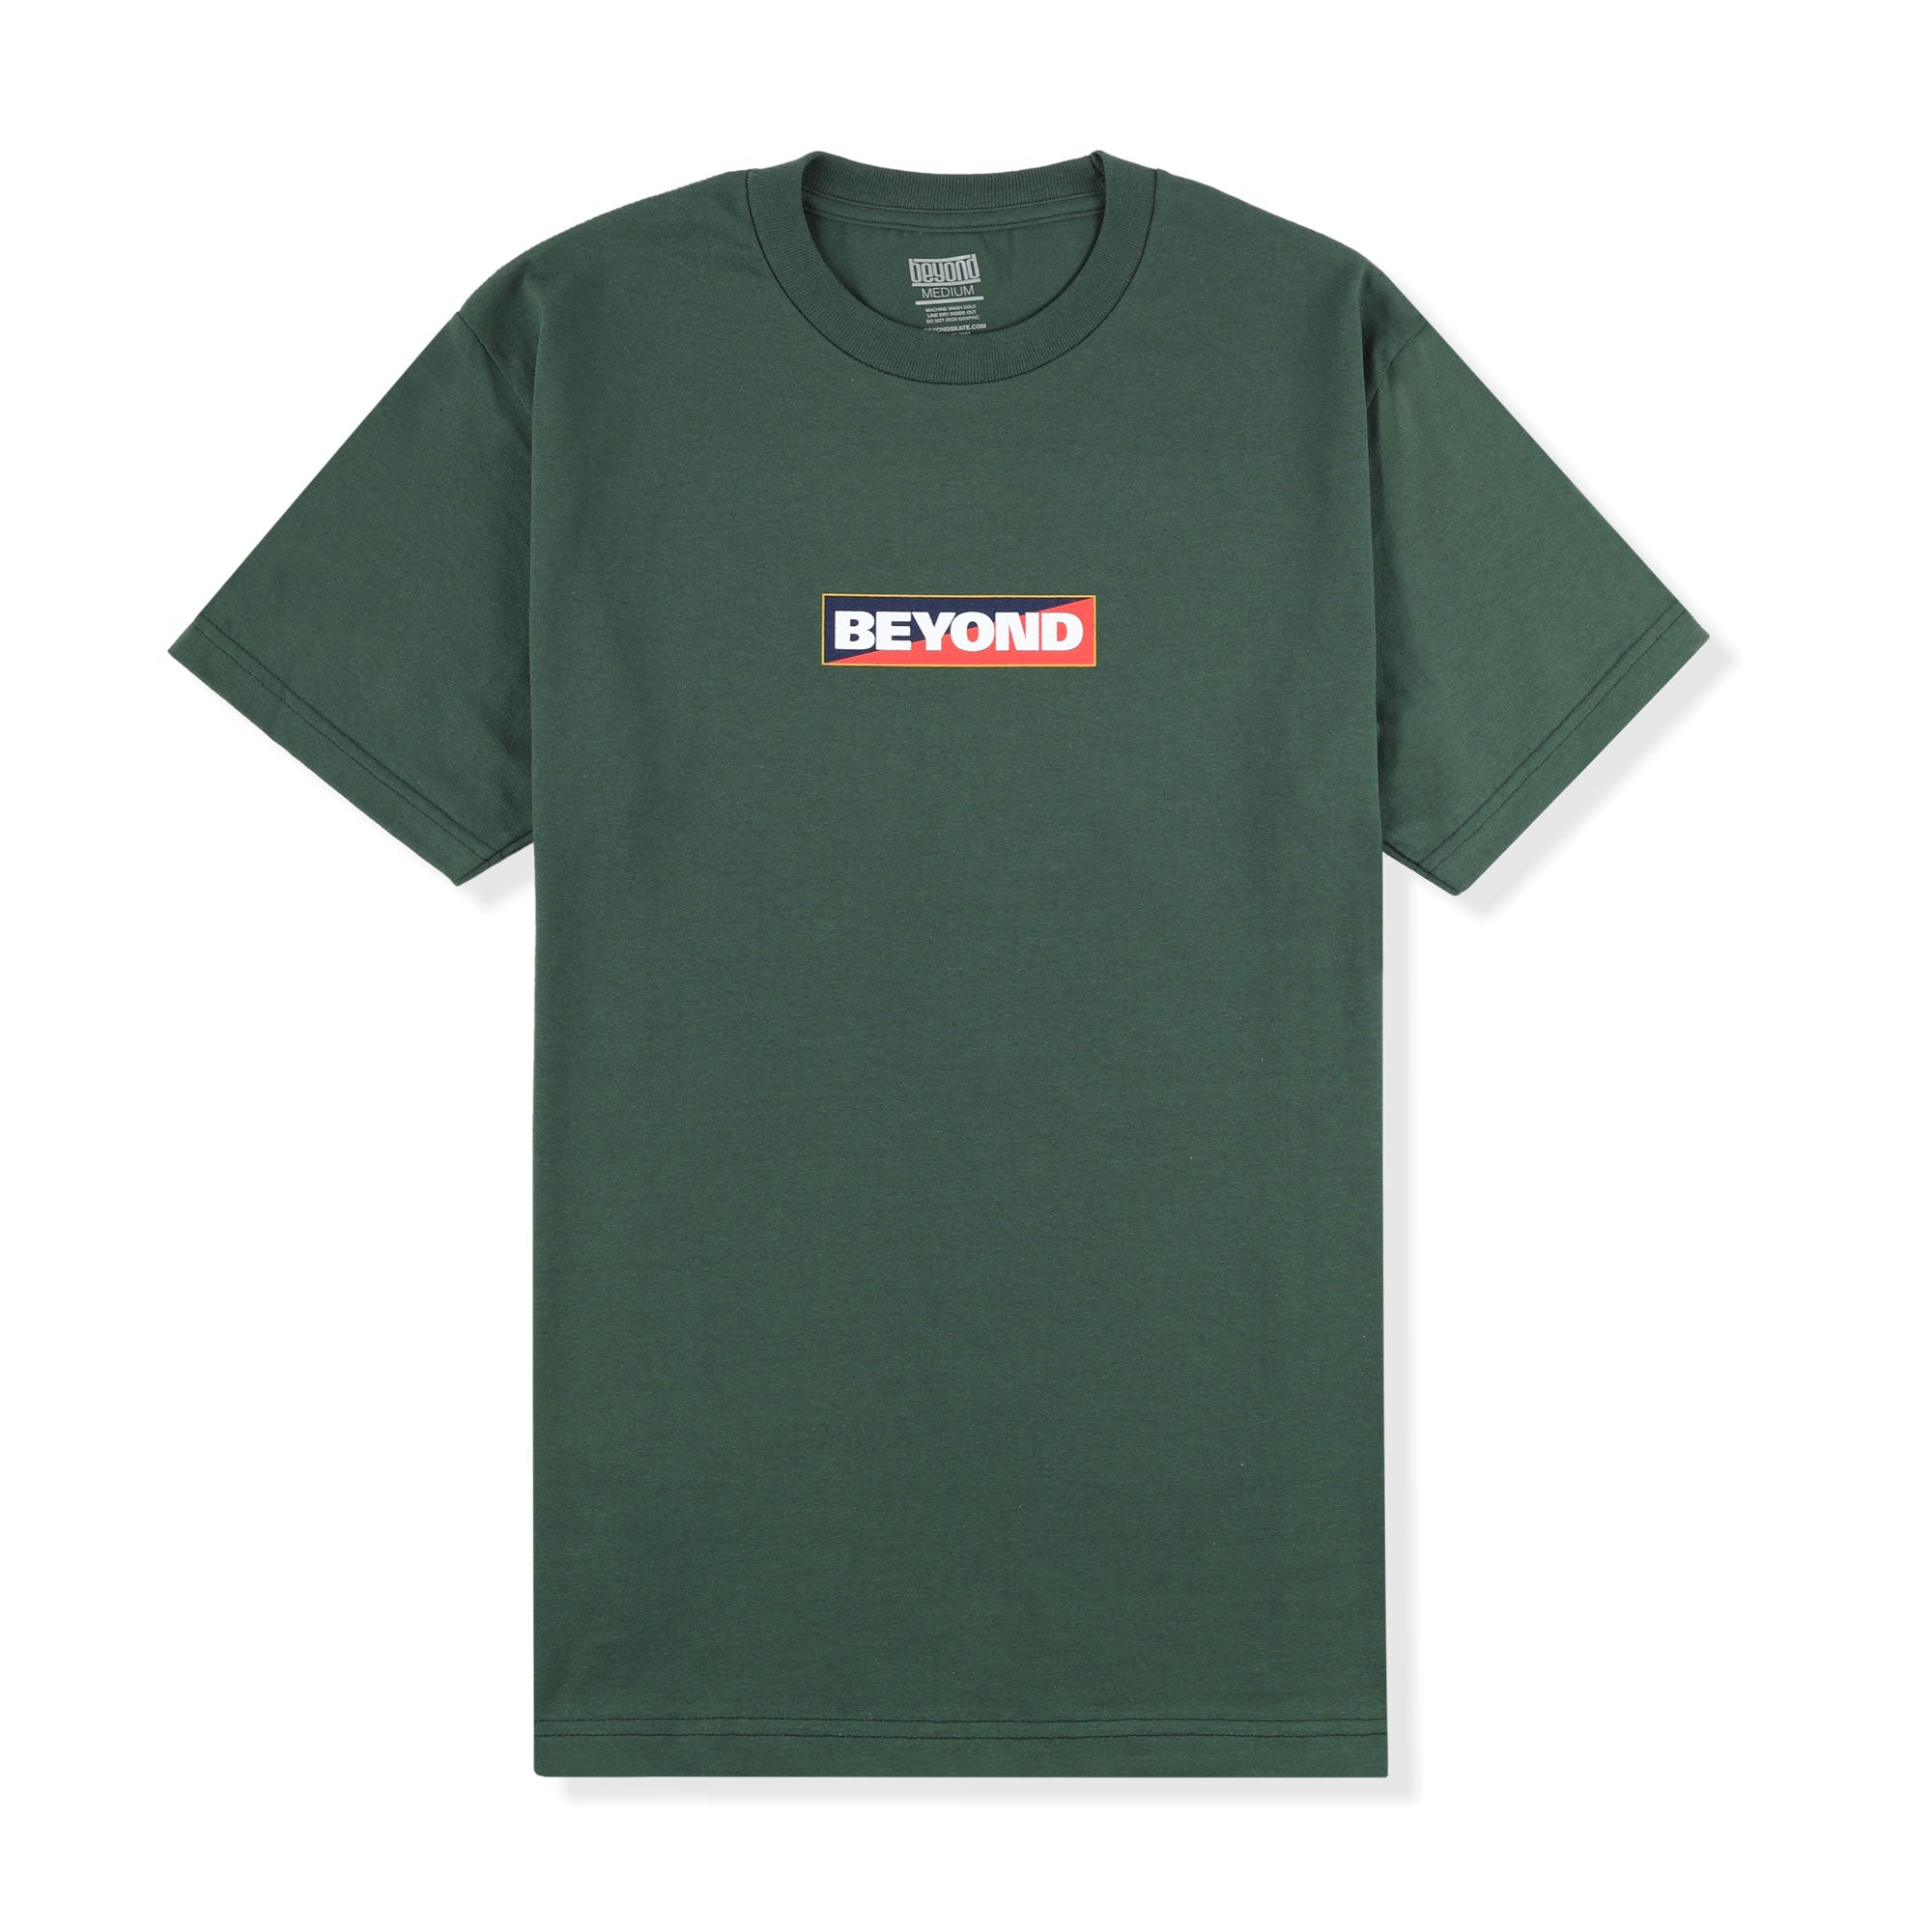 Beyond Vermouth Tee Product Photo #1